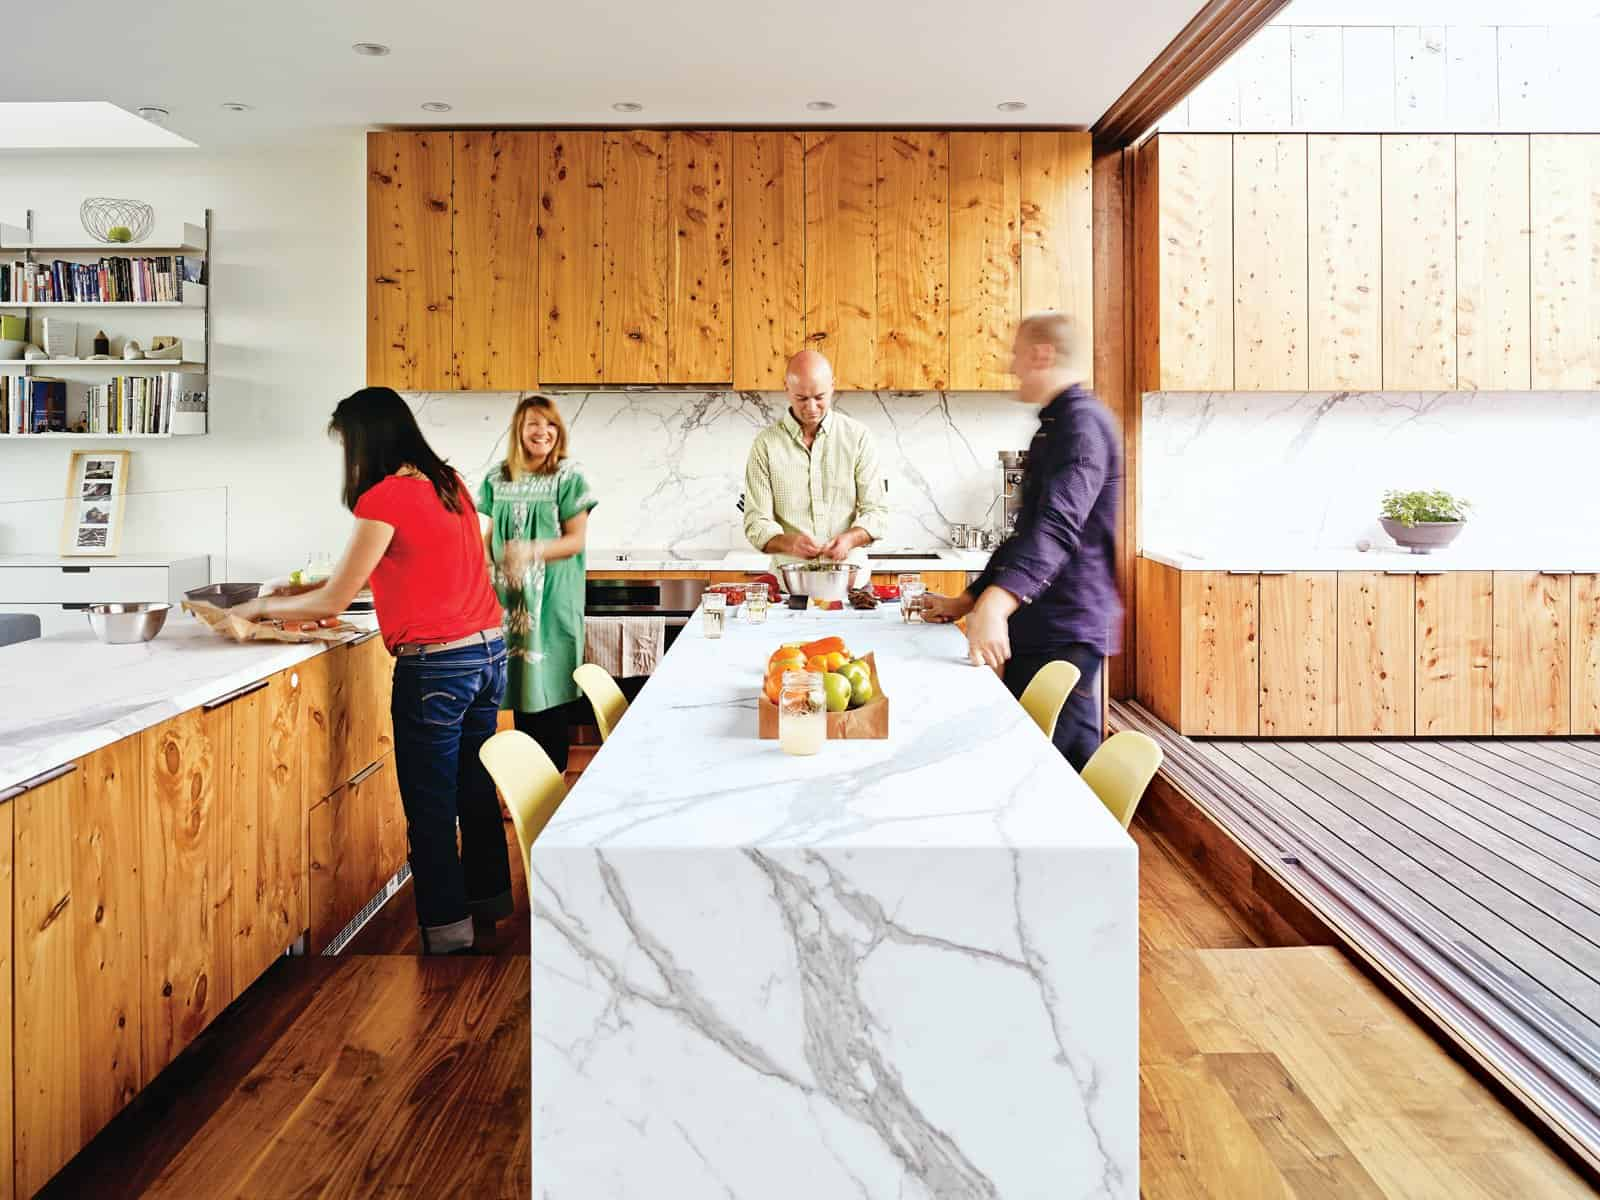 Http://www.dwell.com/houses We Love/